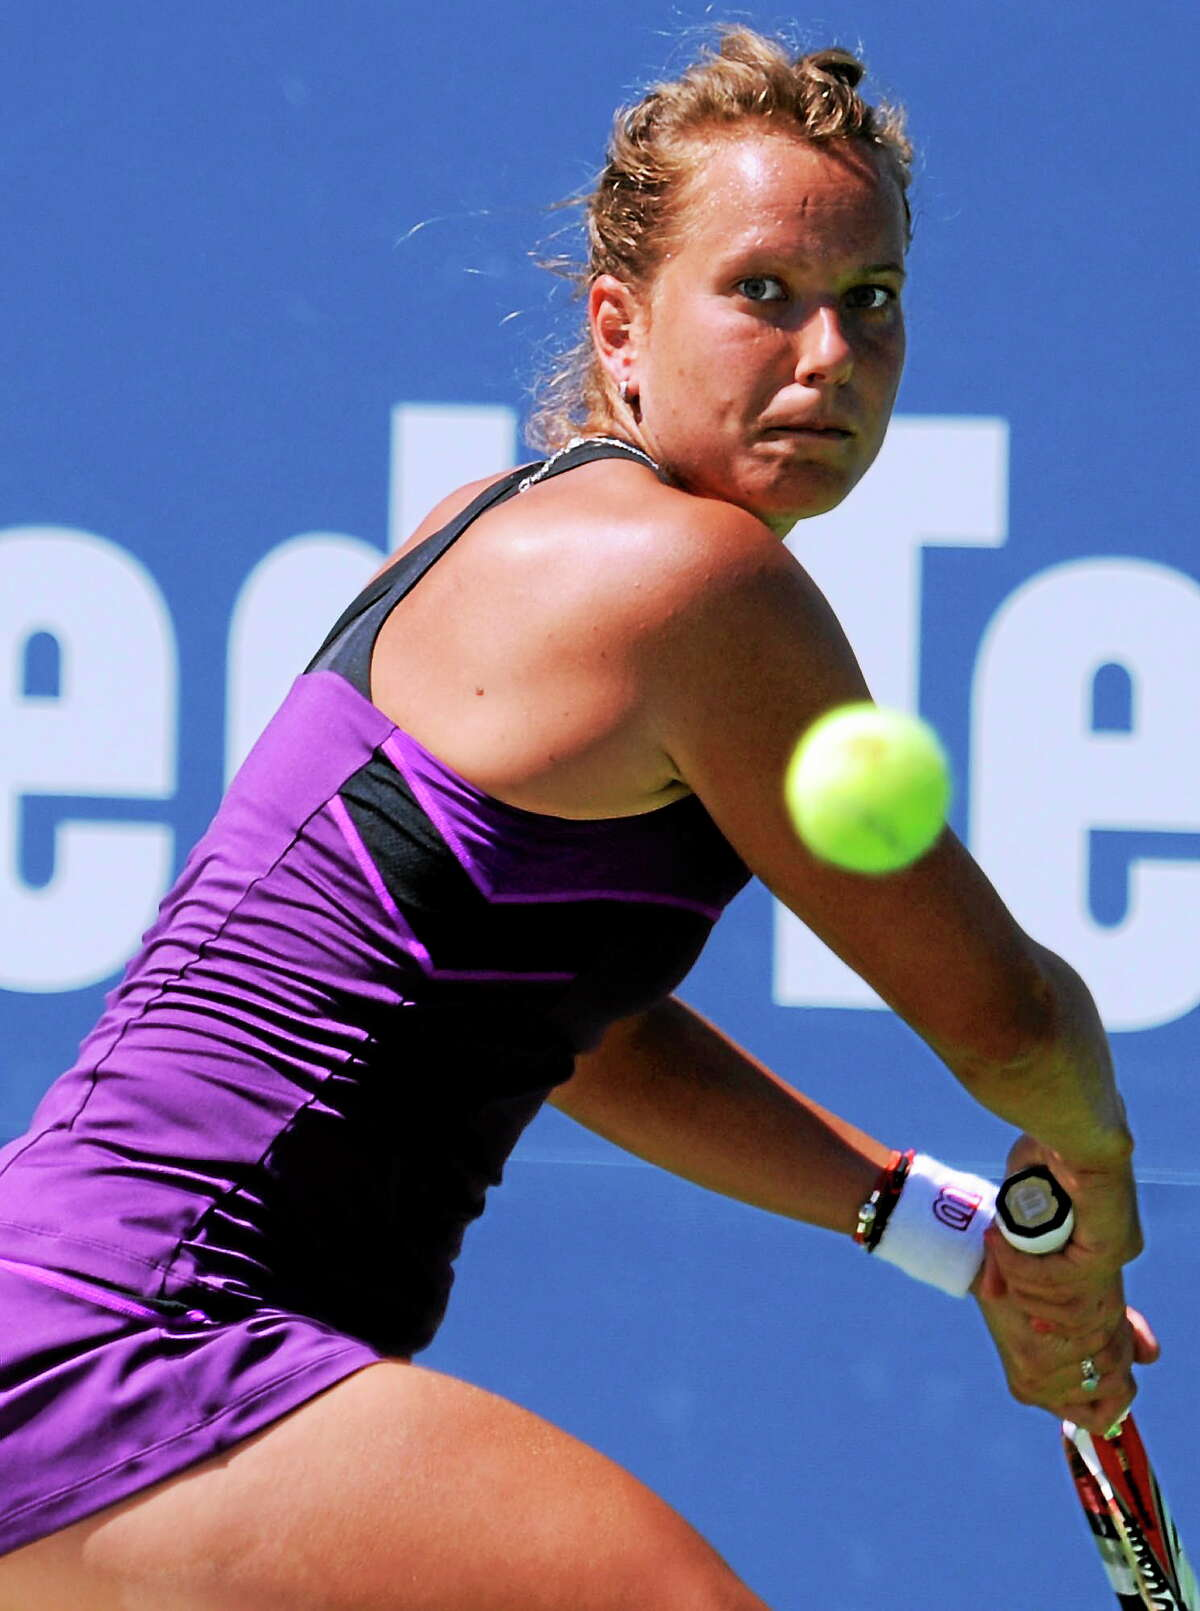 Barbora Zahlavova Strycova defeated Caroline Garcia 7-5, 6-2 on Tuesday afternoon at the Connecticut Open.